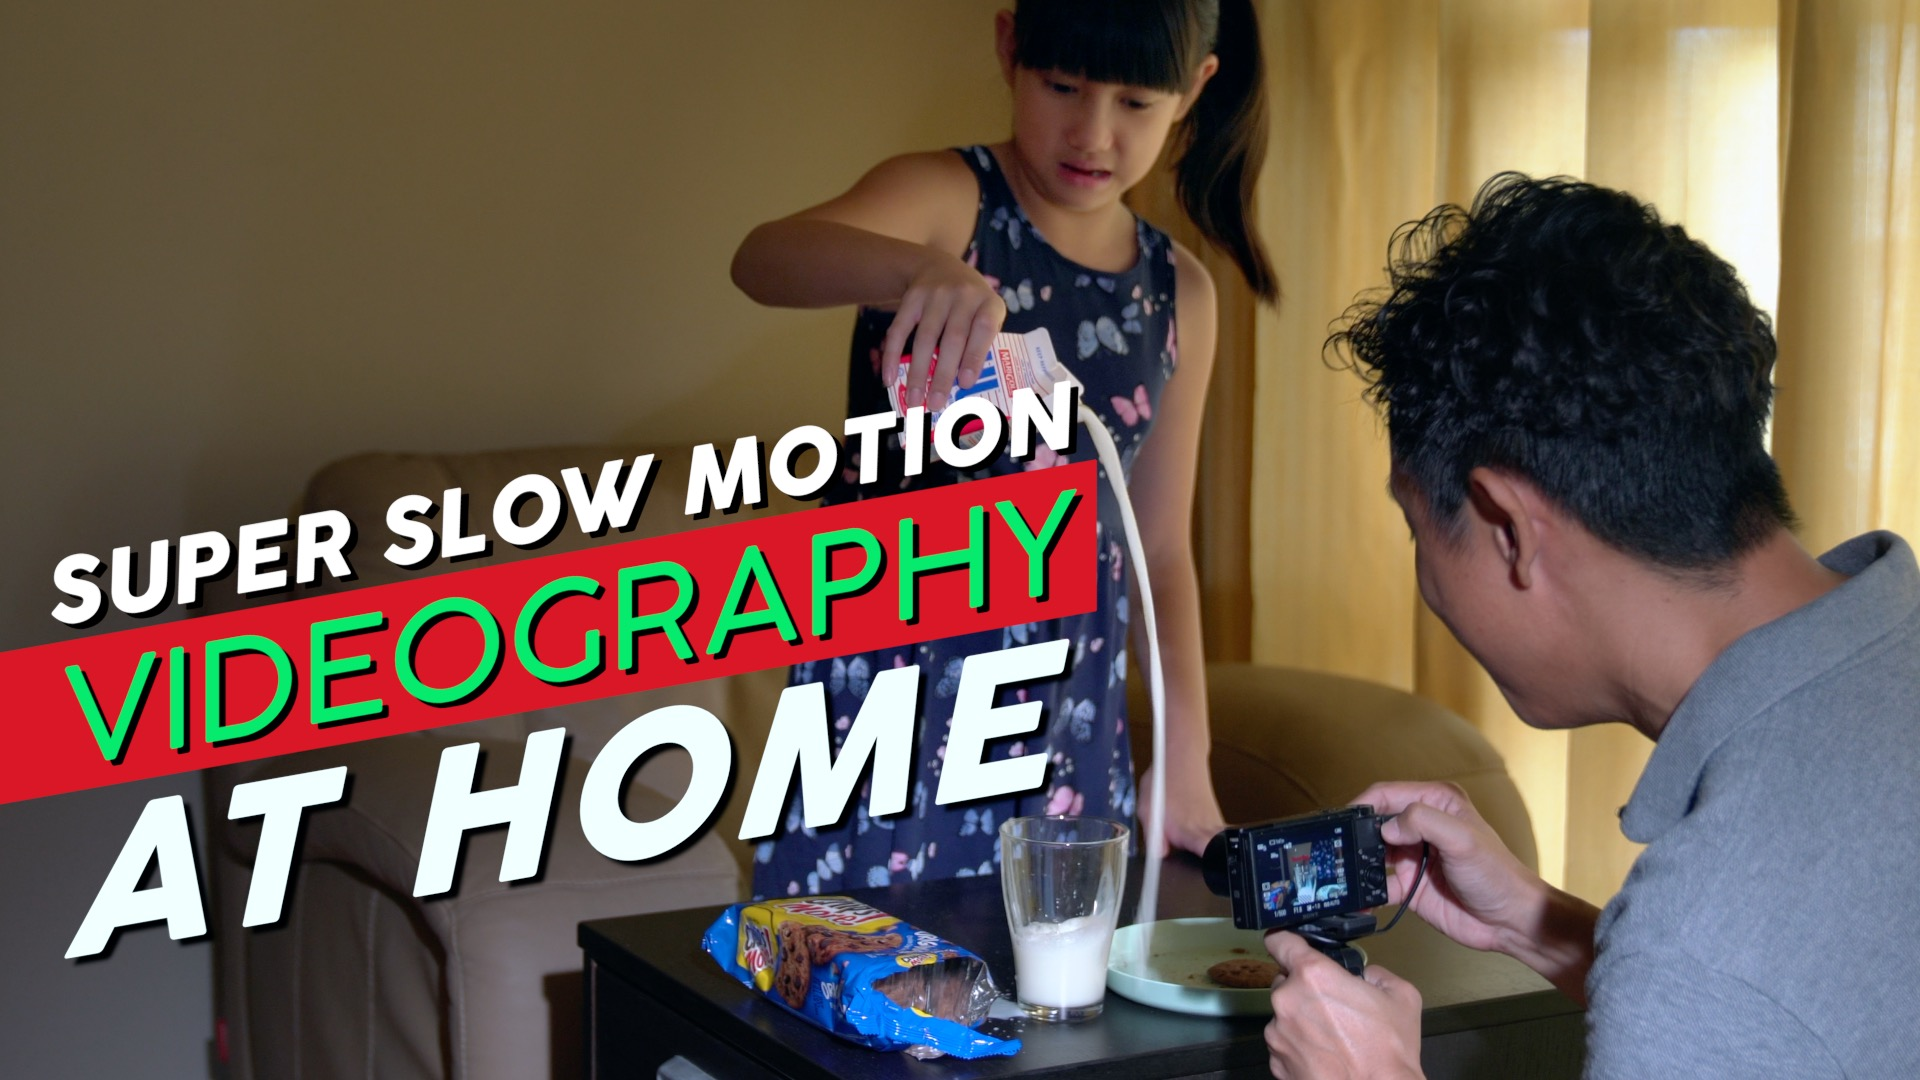 Learn video shooting and editing at home with Baron Abas, WolFang Digital